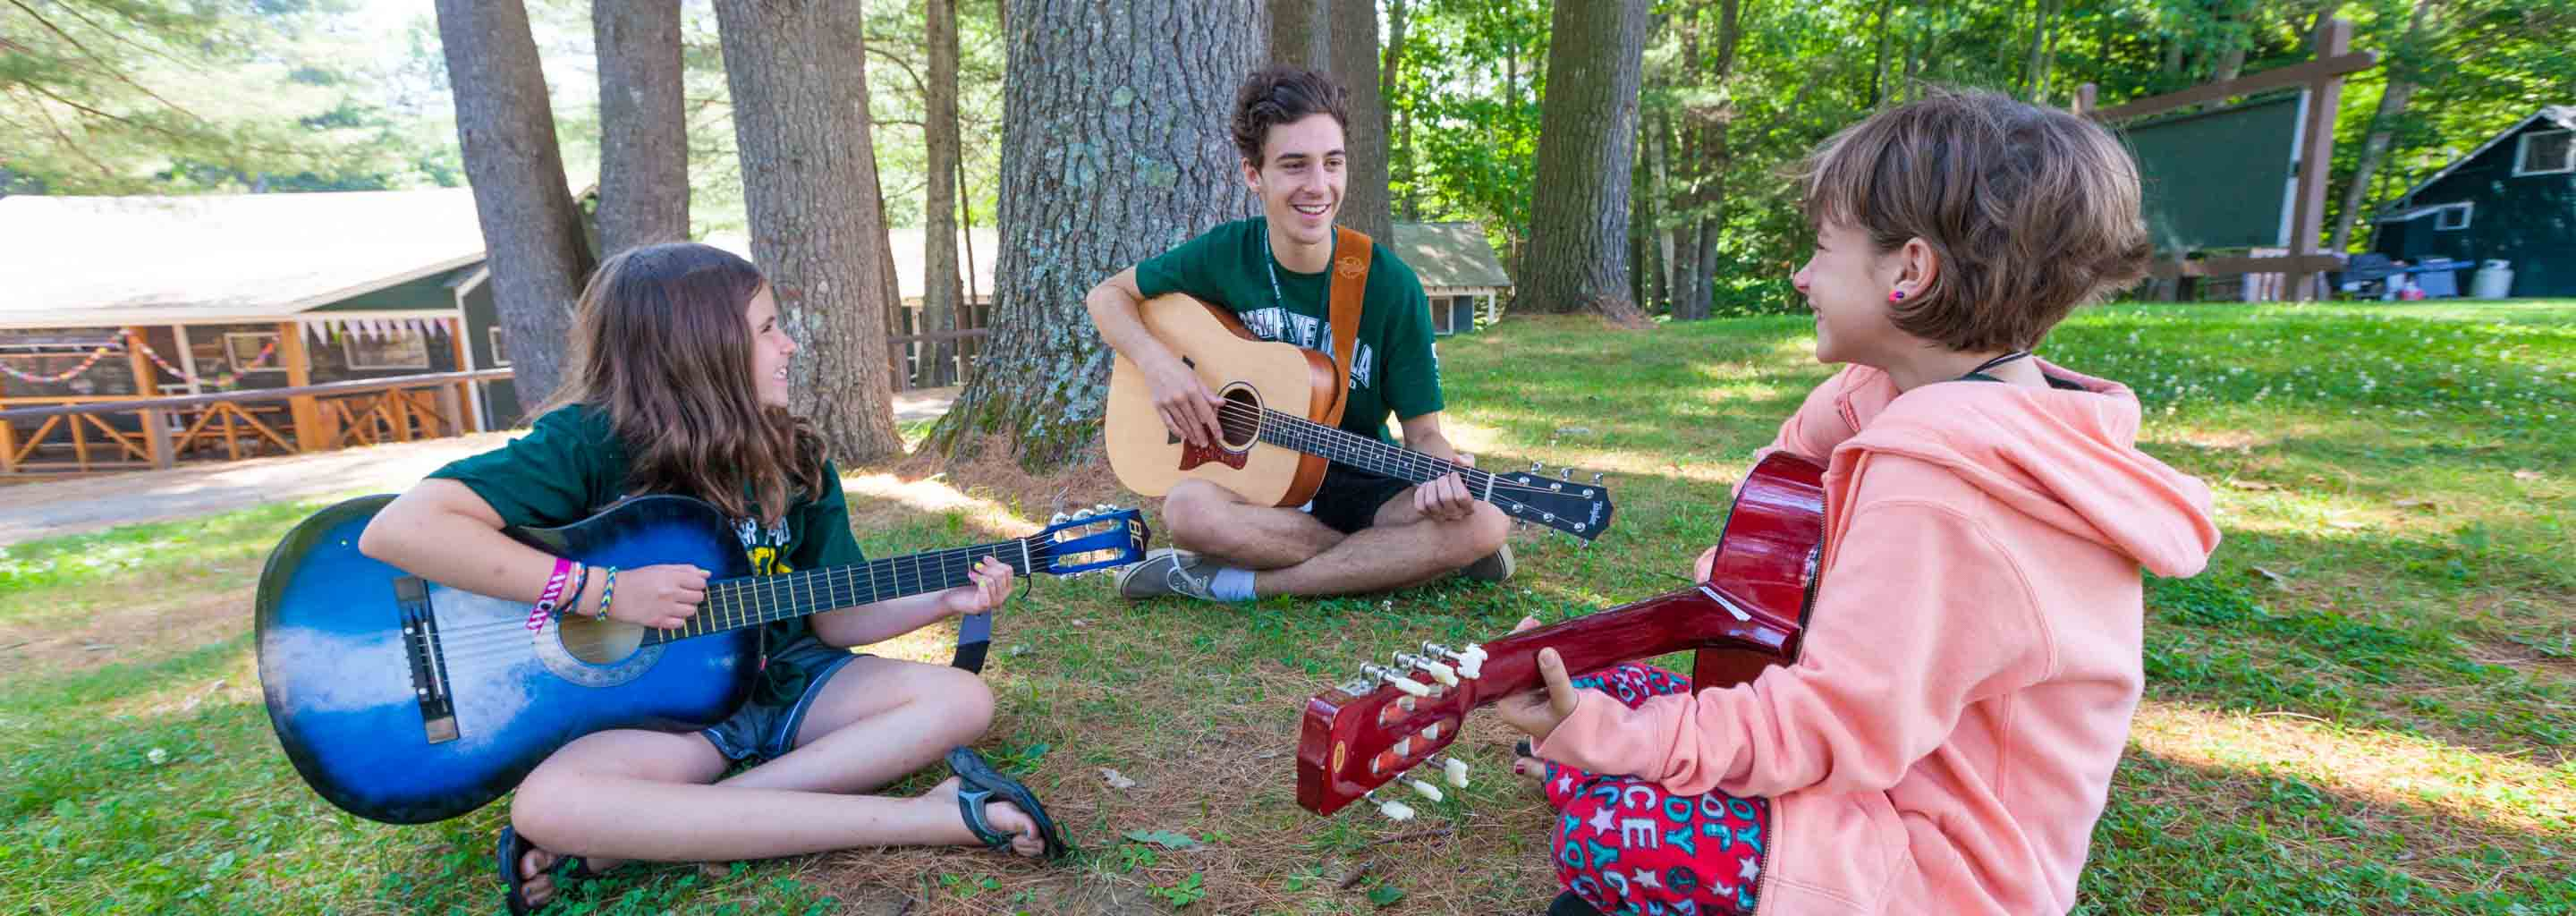 Guitar class at sleepaway camp in America